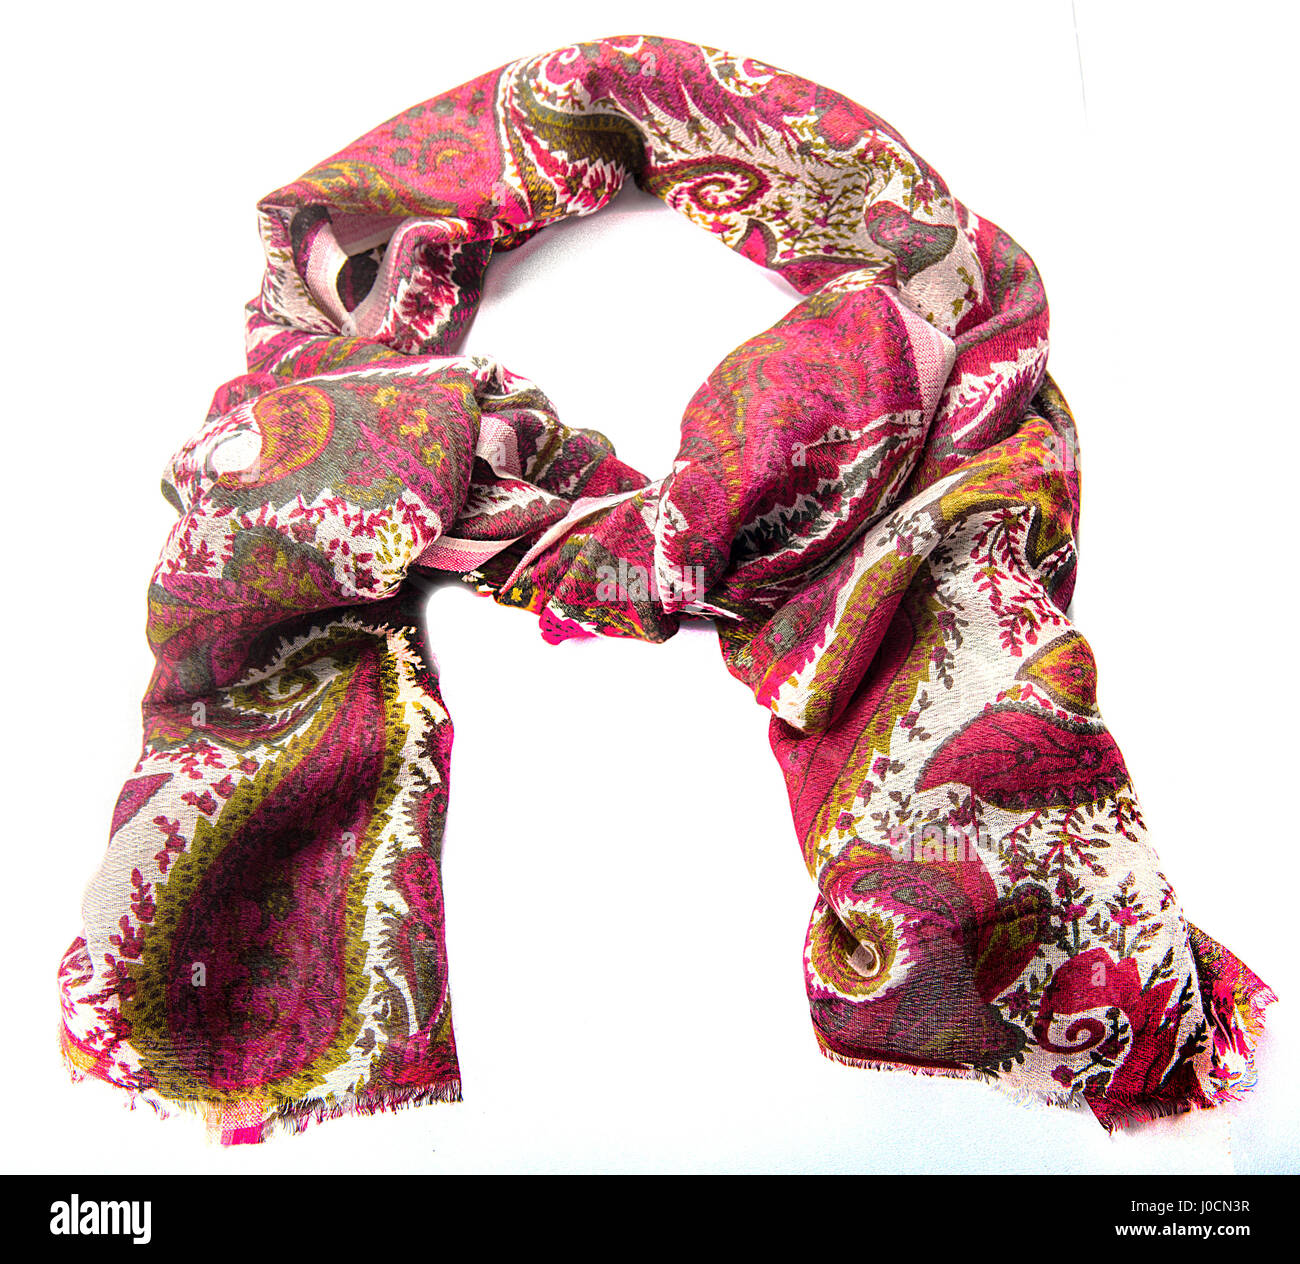 0facf0d9d White Shawl Stock Photos & White Shawl Stock Images - Alamy